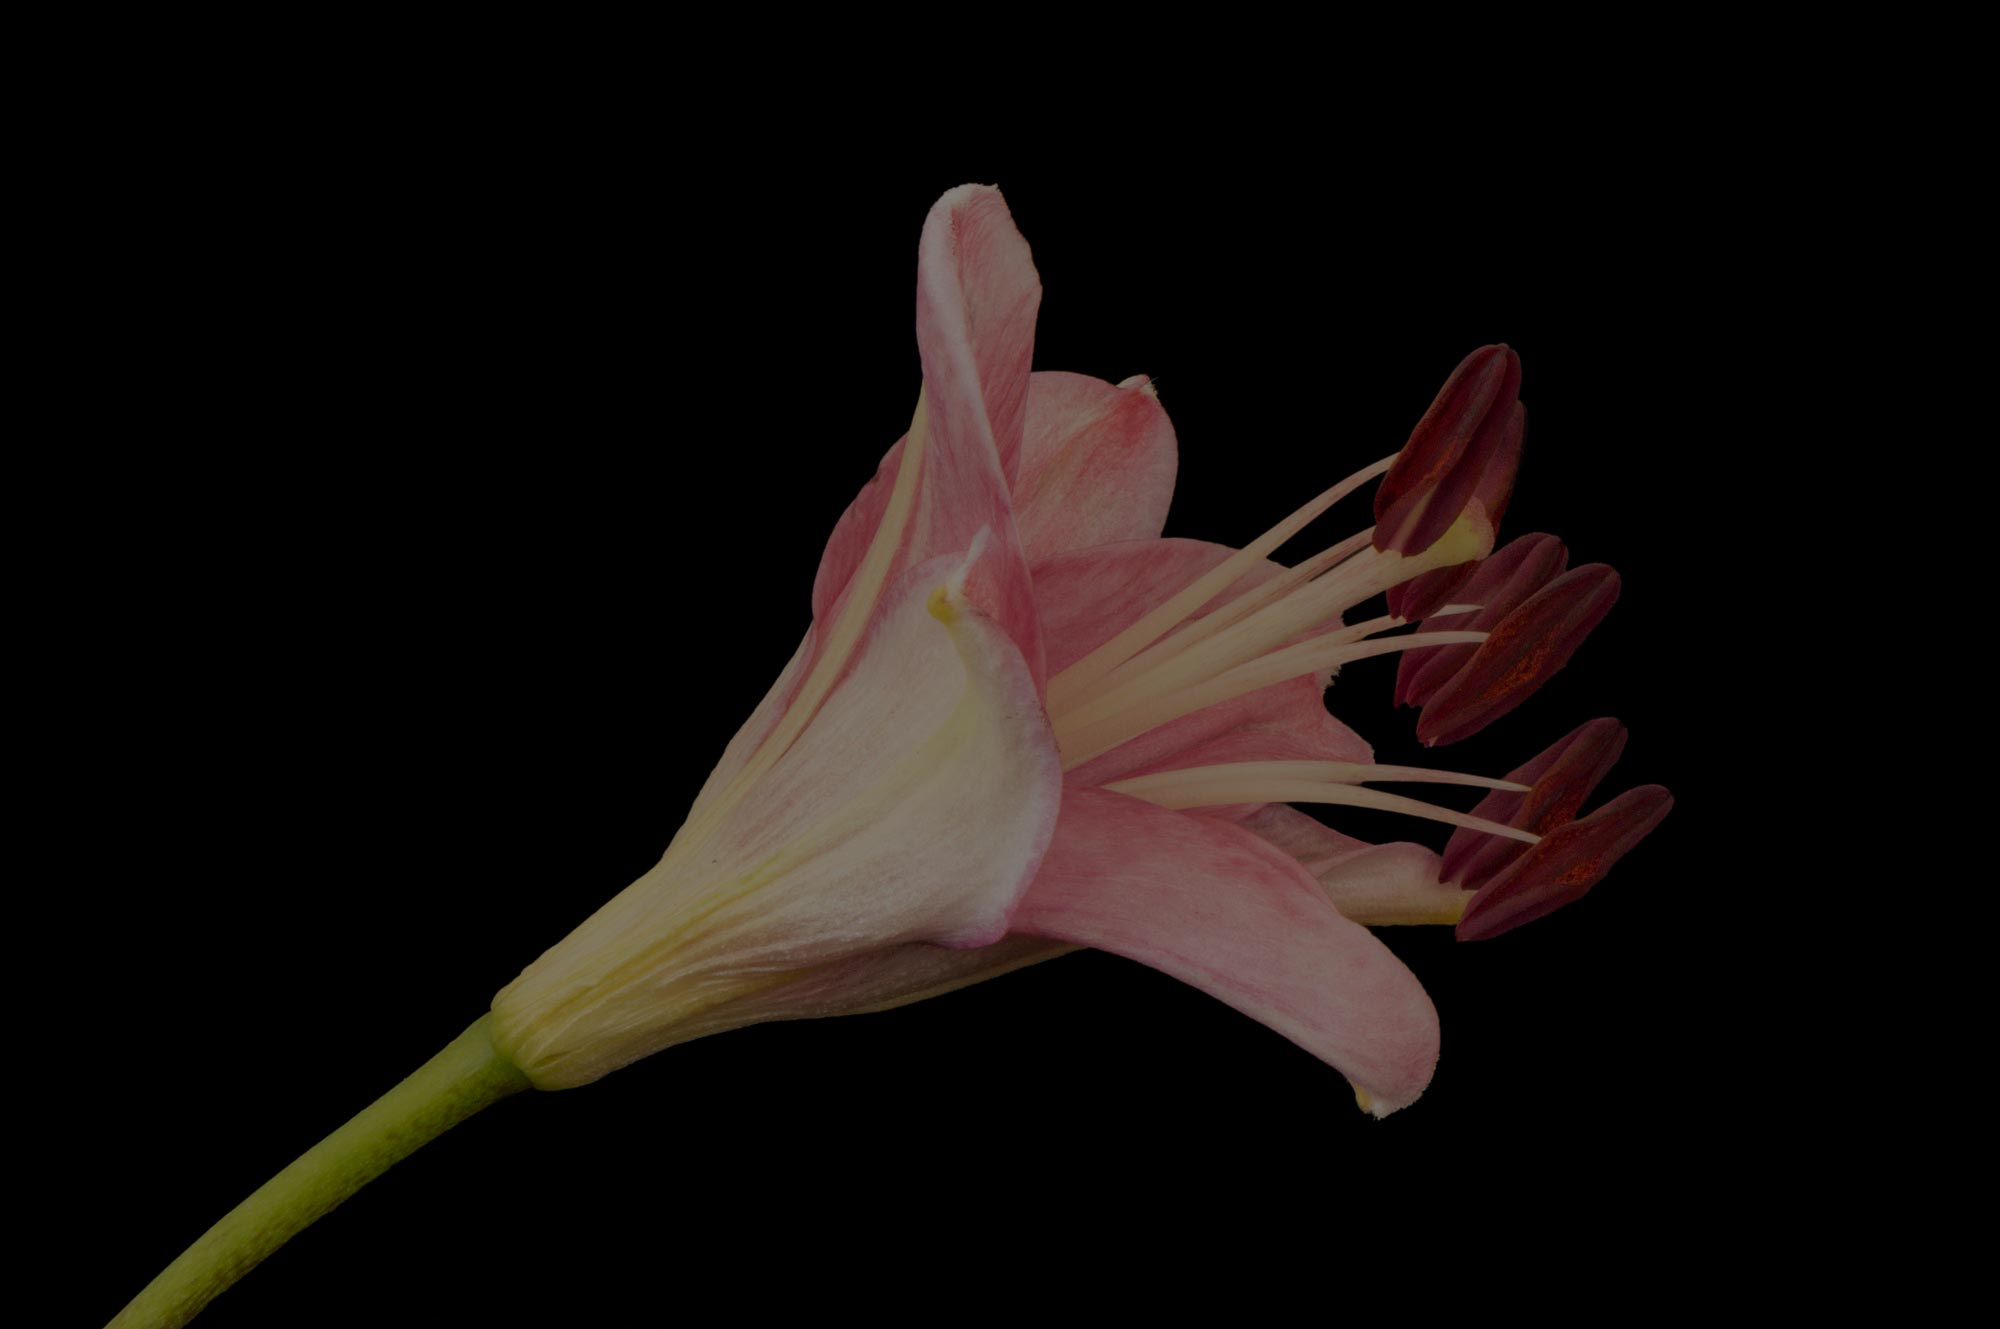 photograph of a single pink Lily on a black background